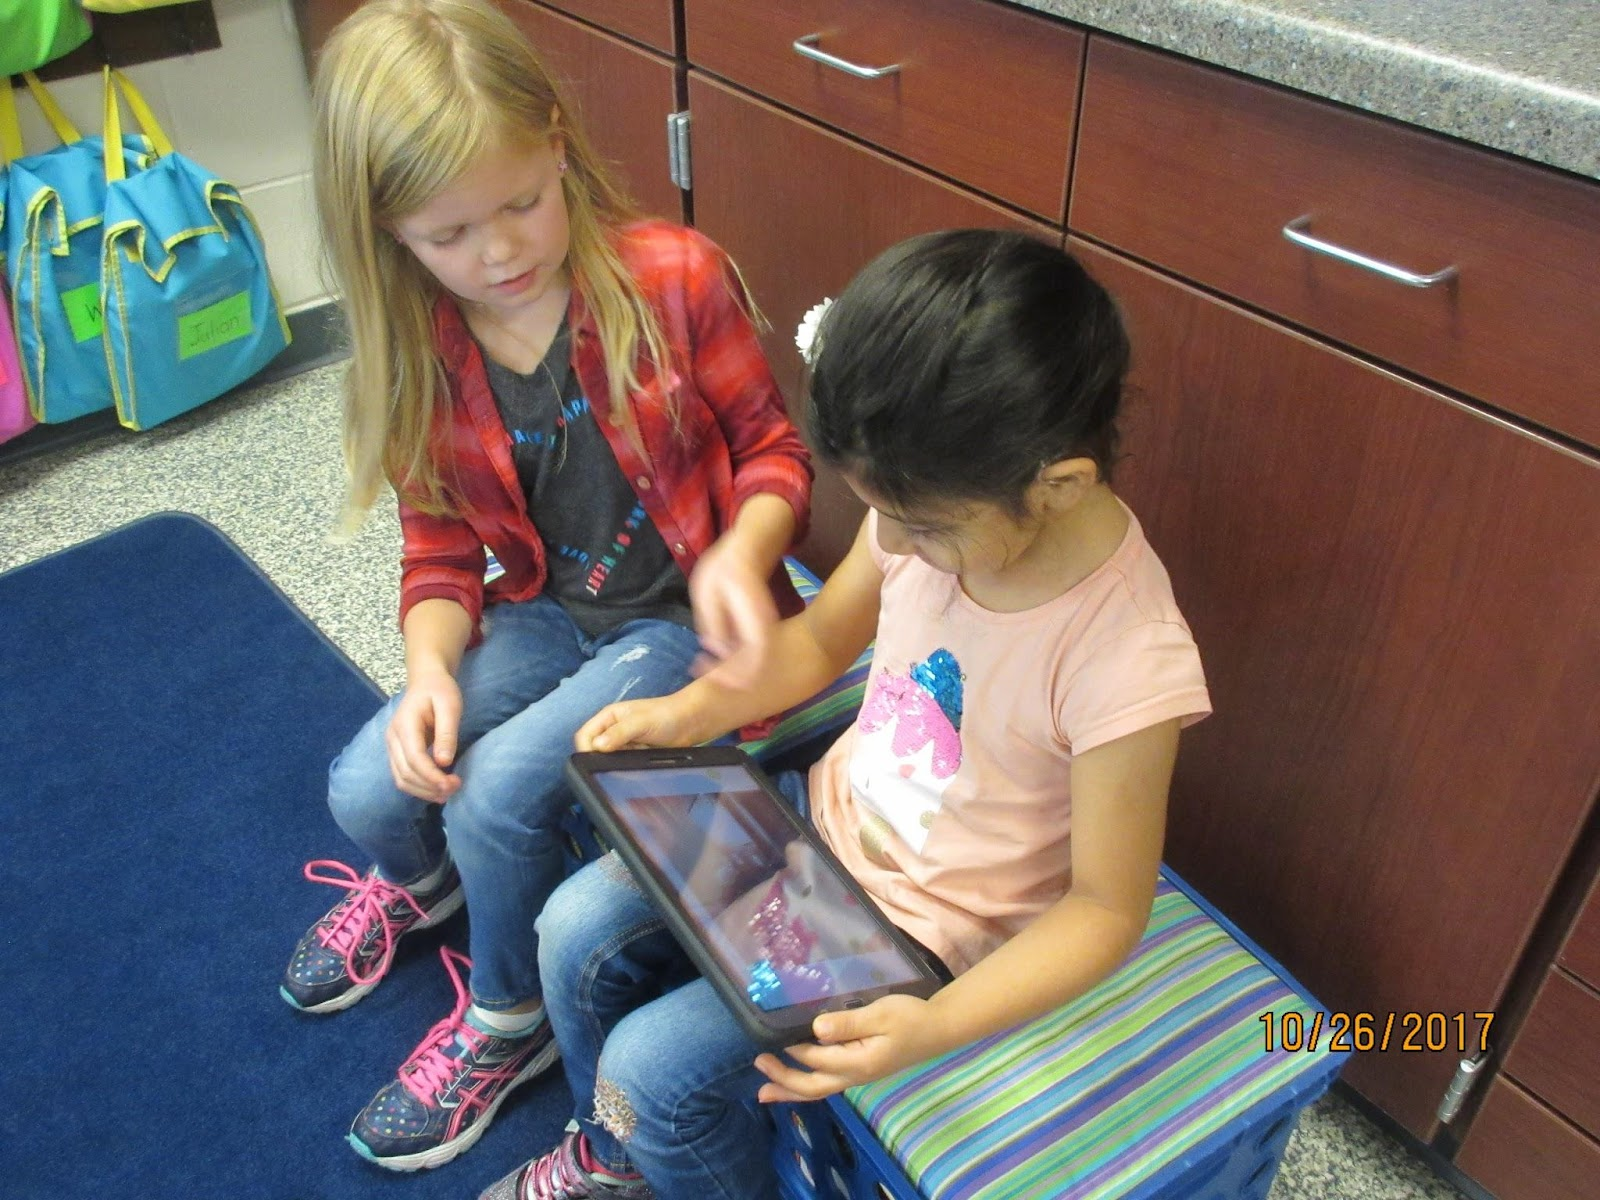 Students reading together from tablet